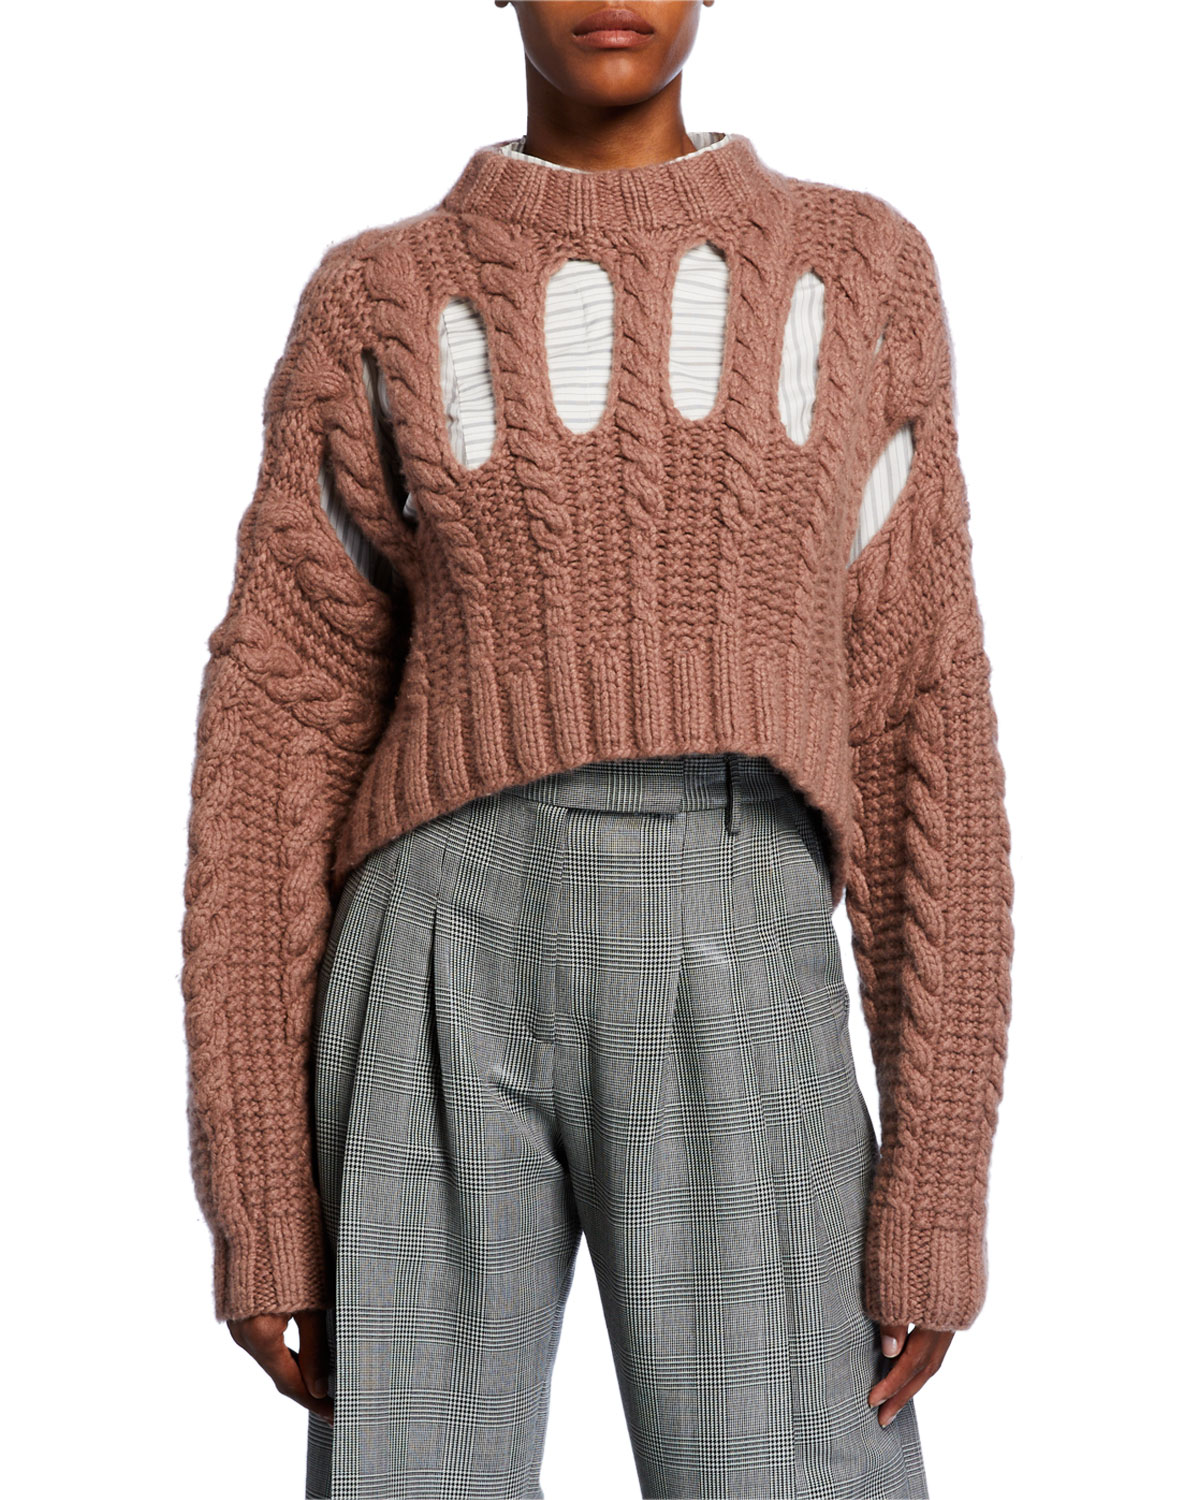 Partow Knits INGA CASHMERE CUTOUT CABLE-KNIT SWEATER